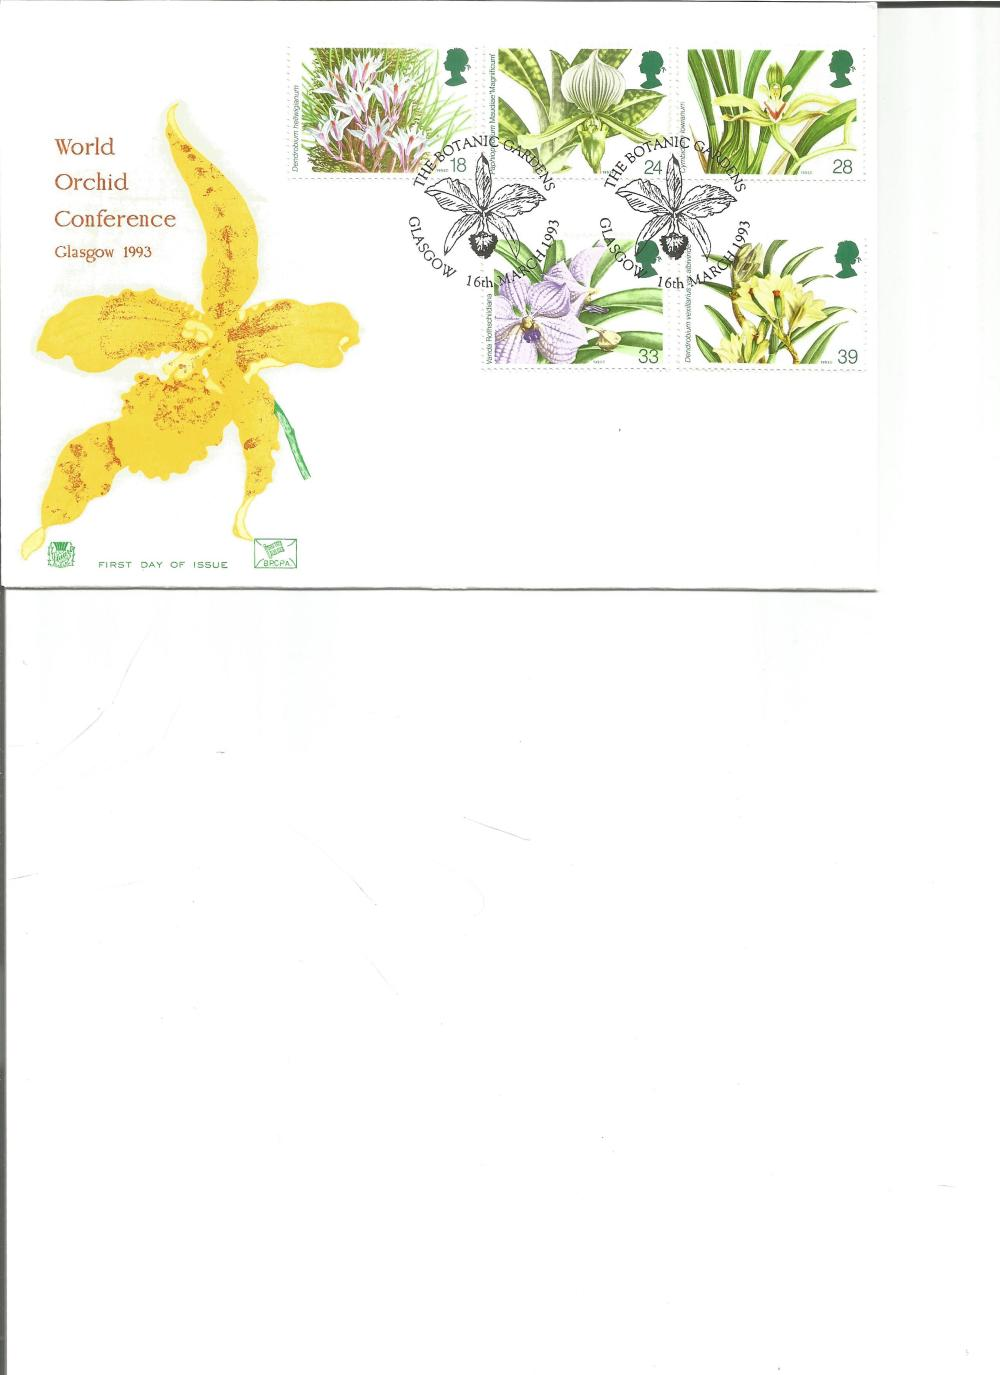 FDC World Orchid Conference Glasgow 1993 c/w five commemorative stamps, double PM The Botanic